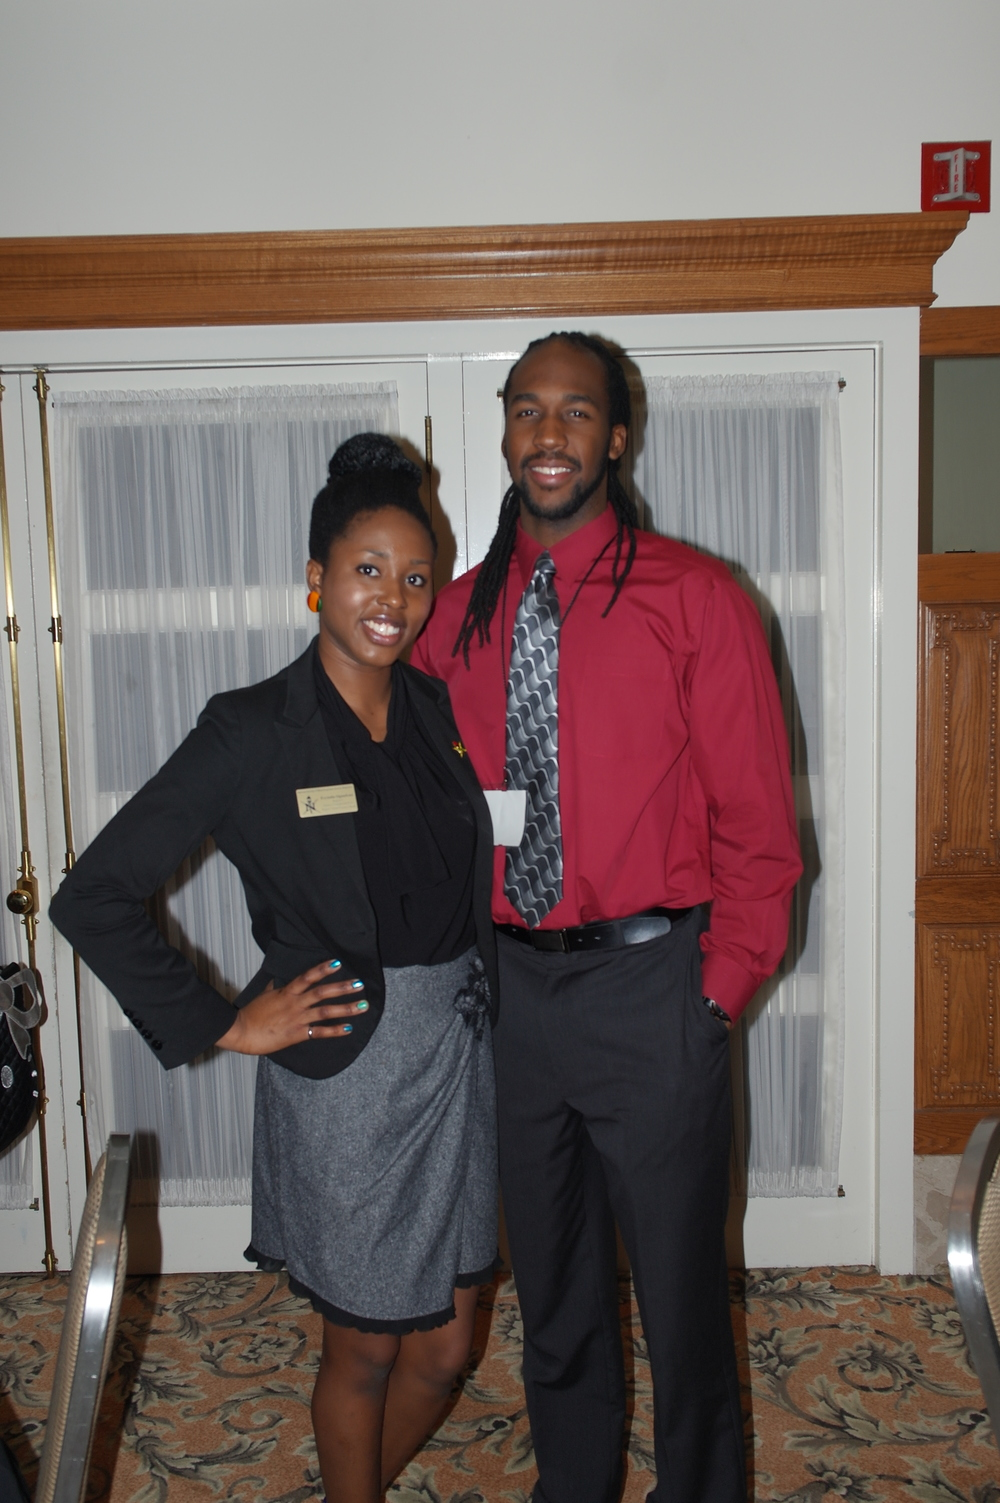 Me with my big-little brother! He's one of the graduating seniors!